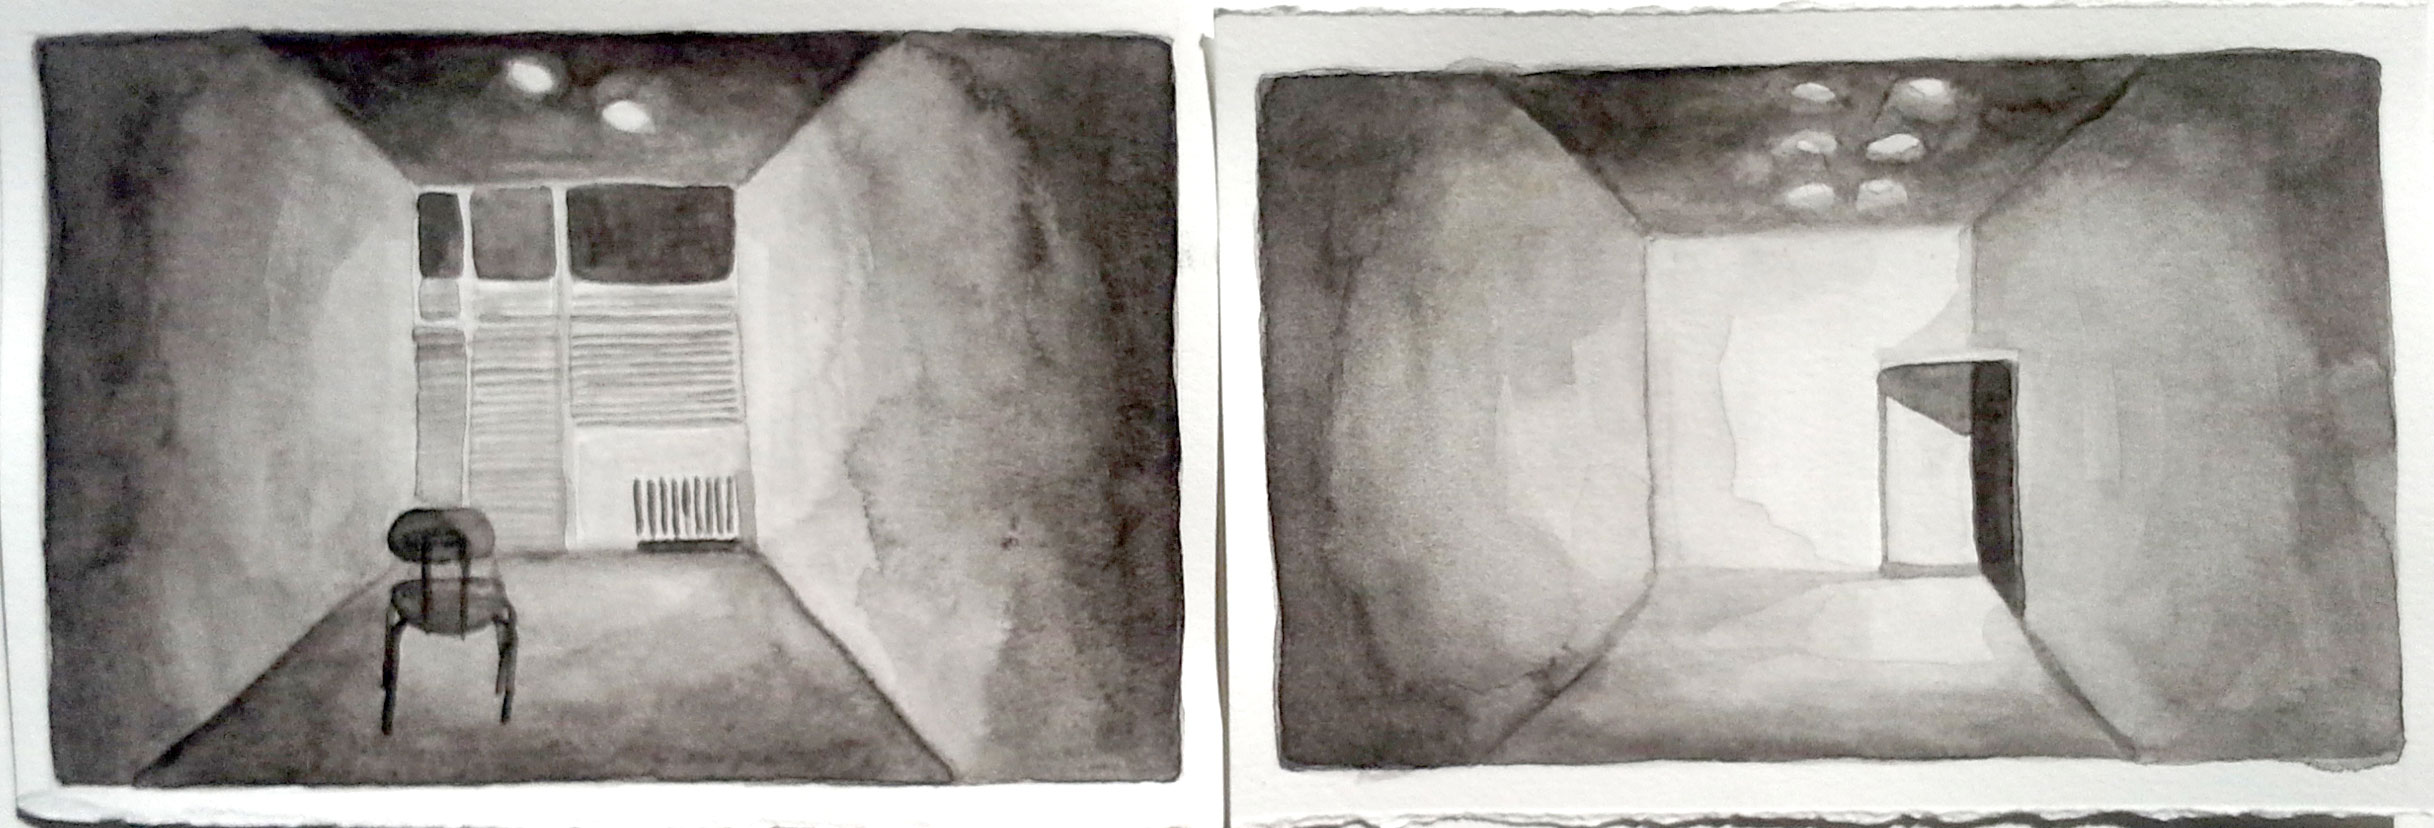 Gallery, Front & Back 2, 2013, 4 x 12 inches, watercolor on paper